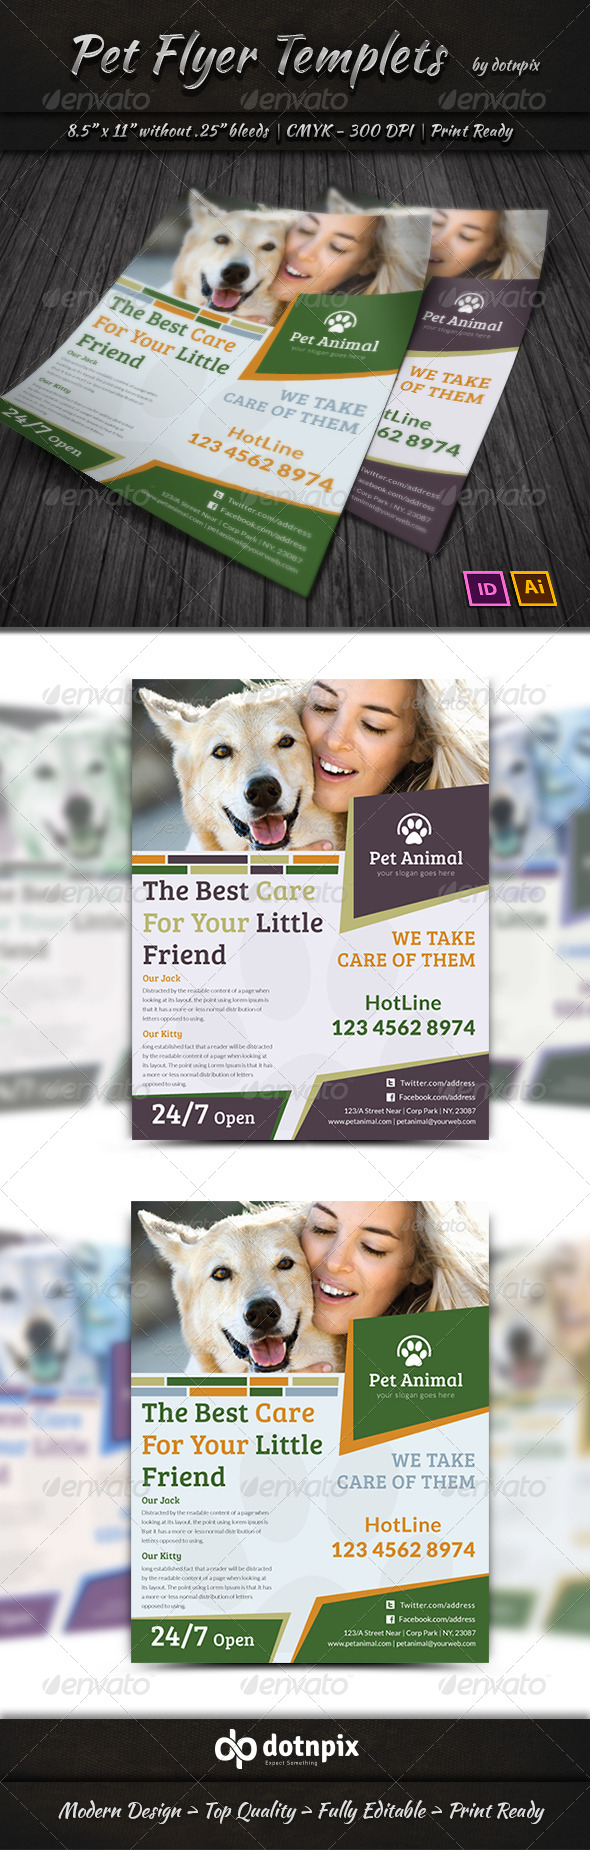 Pet Flyer Templets - Corporate Flyers